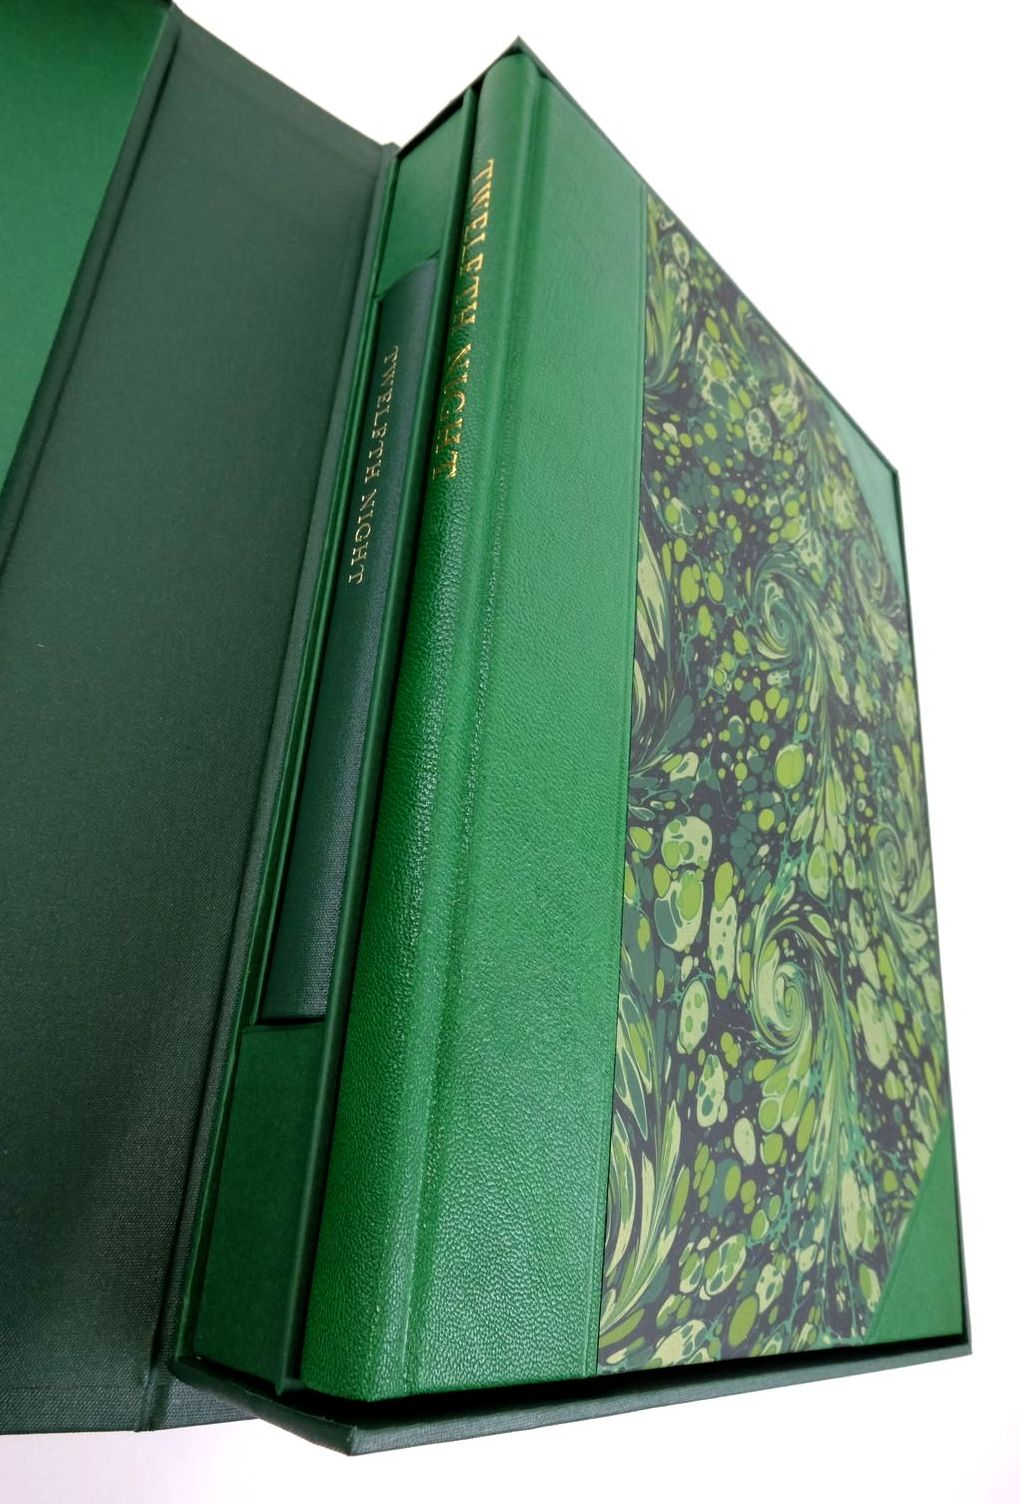 Photo of TWELFTH NIGHT OR WHAT YOU WILL (THE LETTERPRESS SHAKESPEARE) written by Shakespeare, William Warren, Roger Wells, Stanley published by Folio Society (STOCK CODE: 1822574)  for sale by Stella & Rose's Books